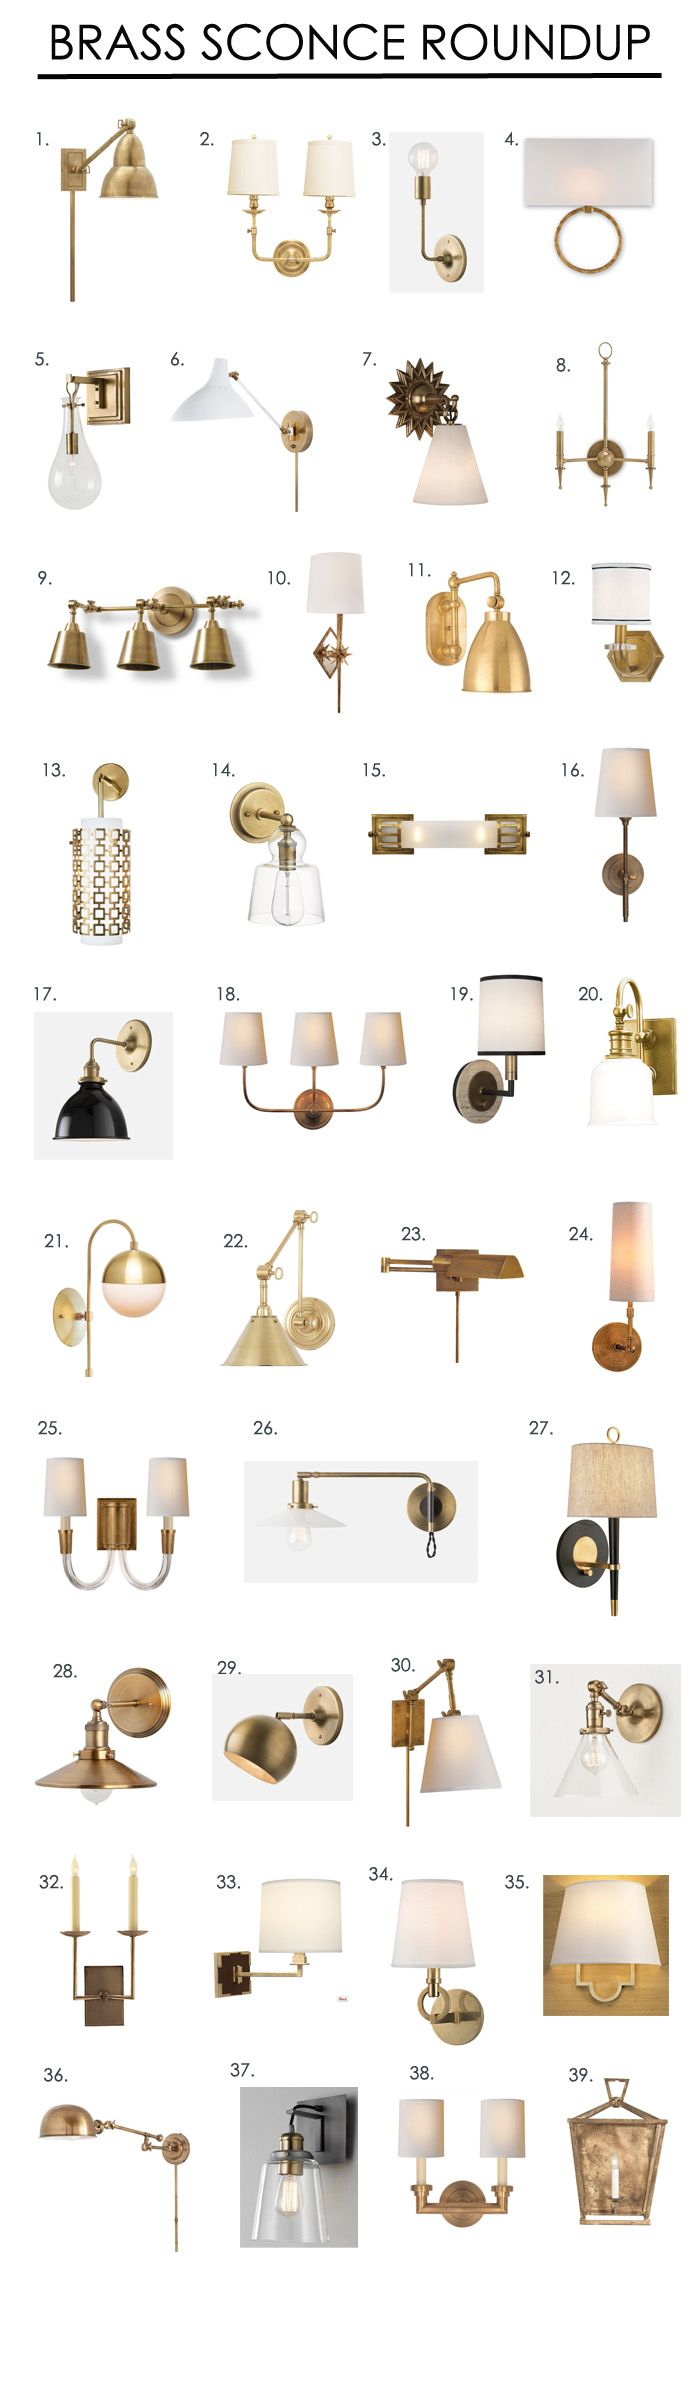 Photo of Massive Brass Sconce Roundup! (elements of style)